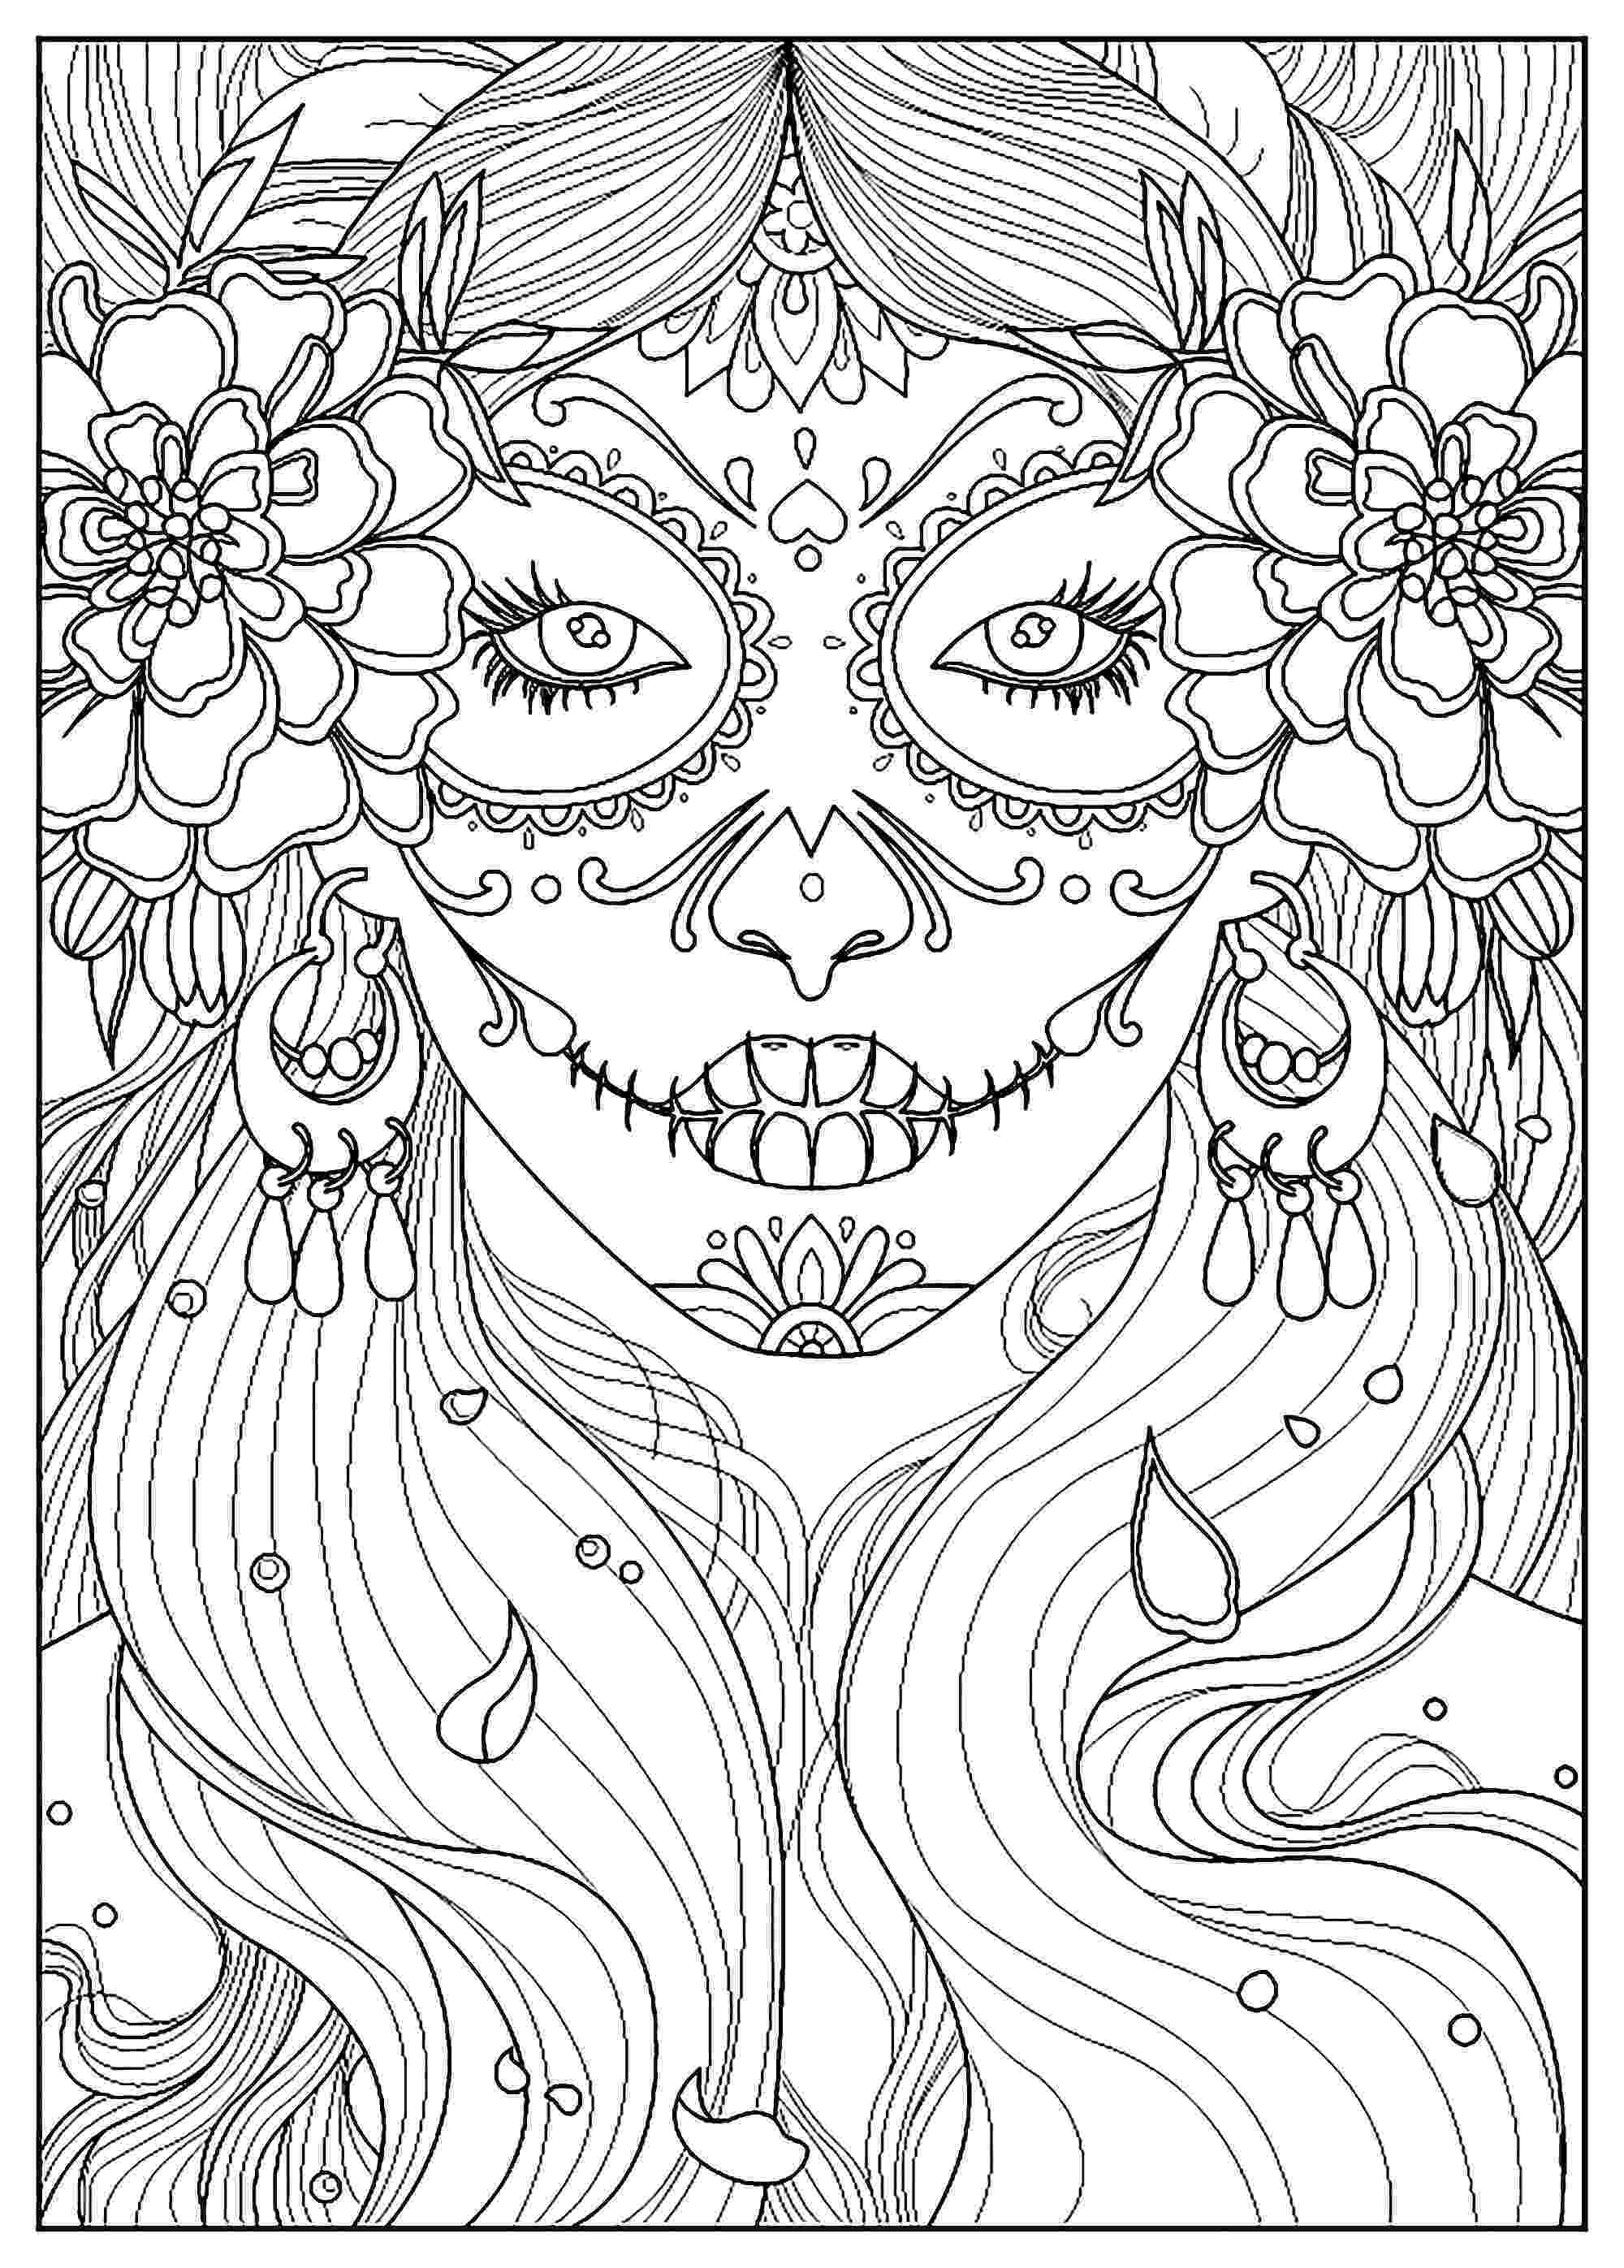 day of dead coloring pages amelia day of the dead dottie gleason skull coloring pages dead day of coloring